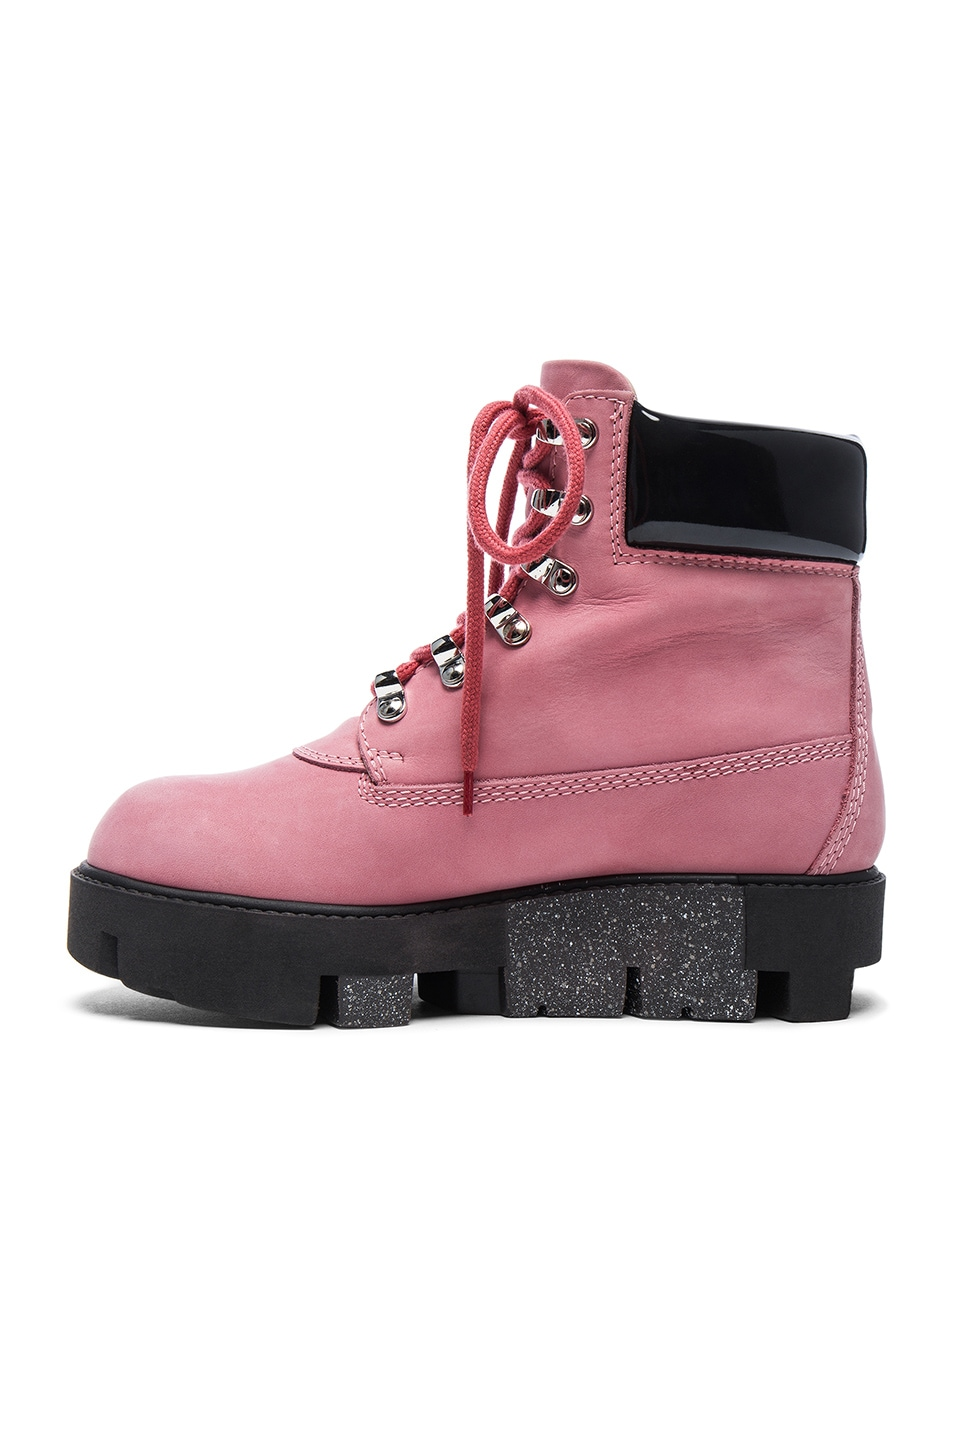 Image 5 of Acne Studios Leather Telde Boots in Bubble Pink & Black